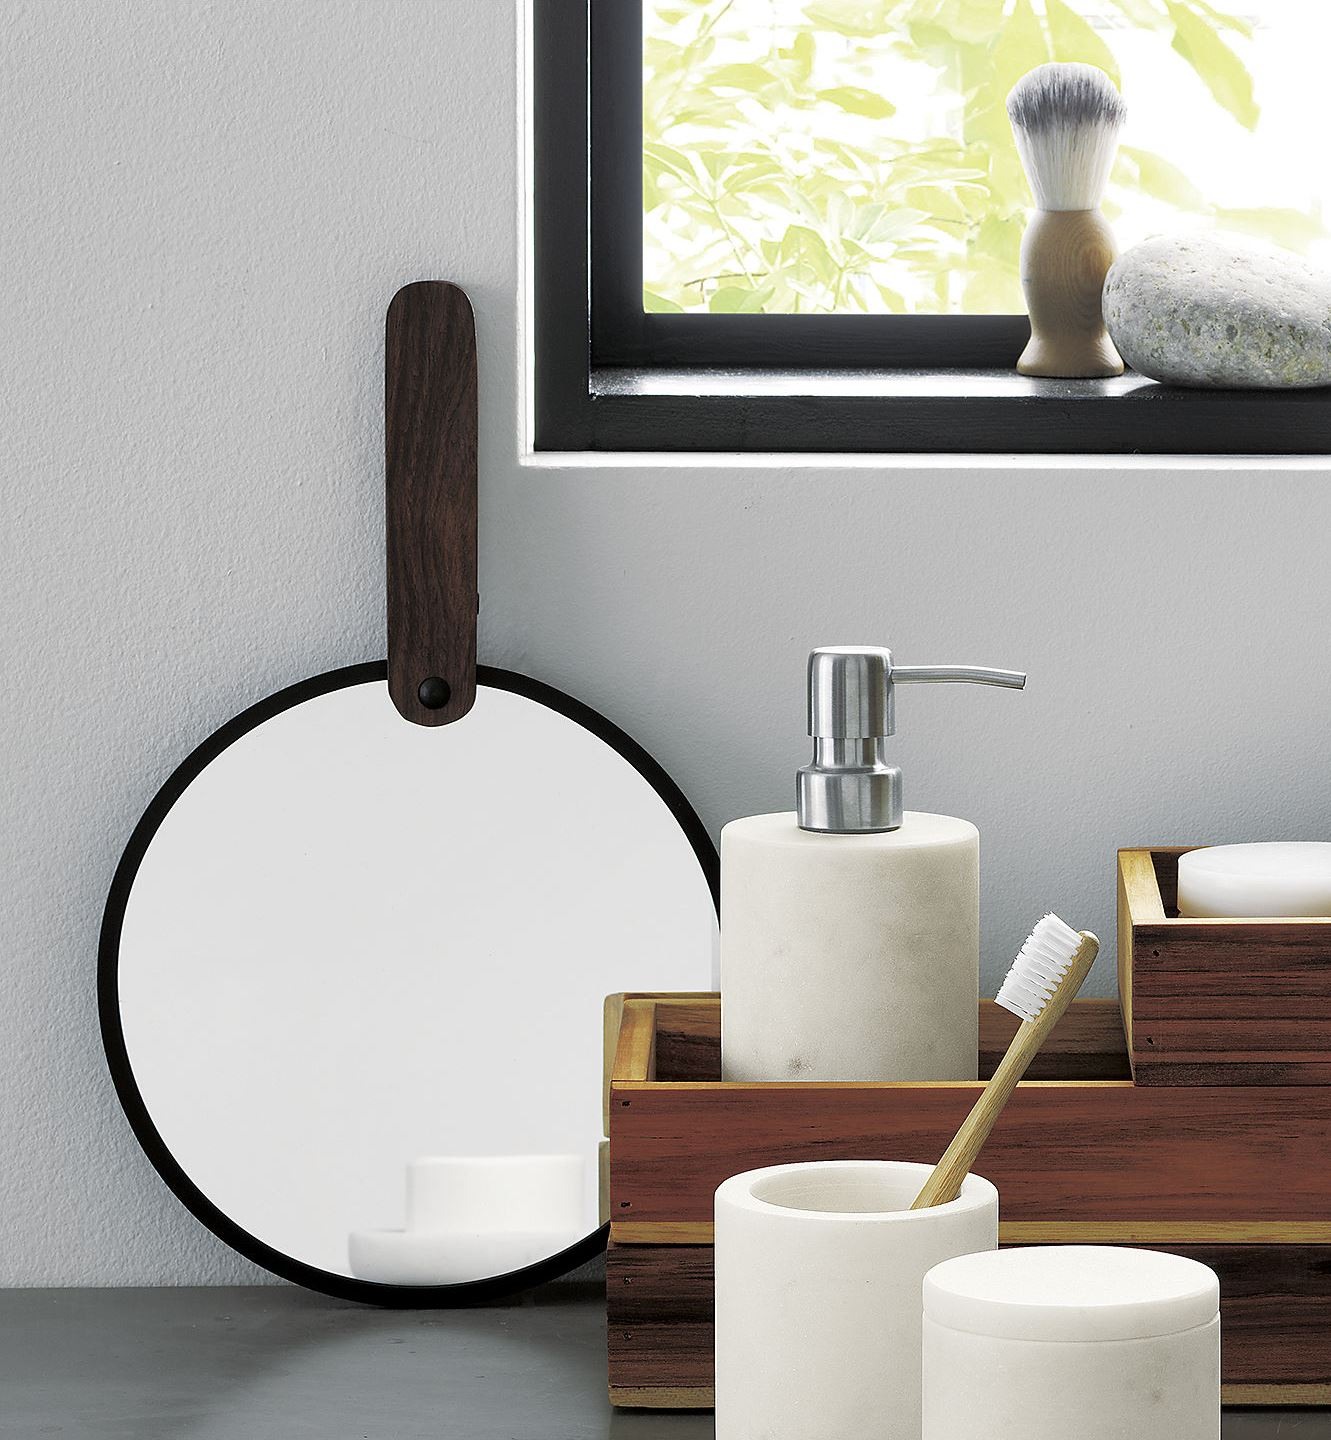 Hand mirror from CB2